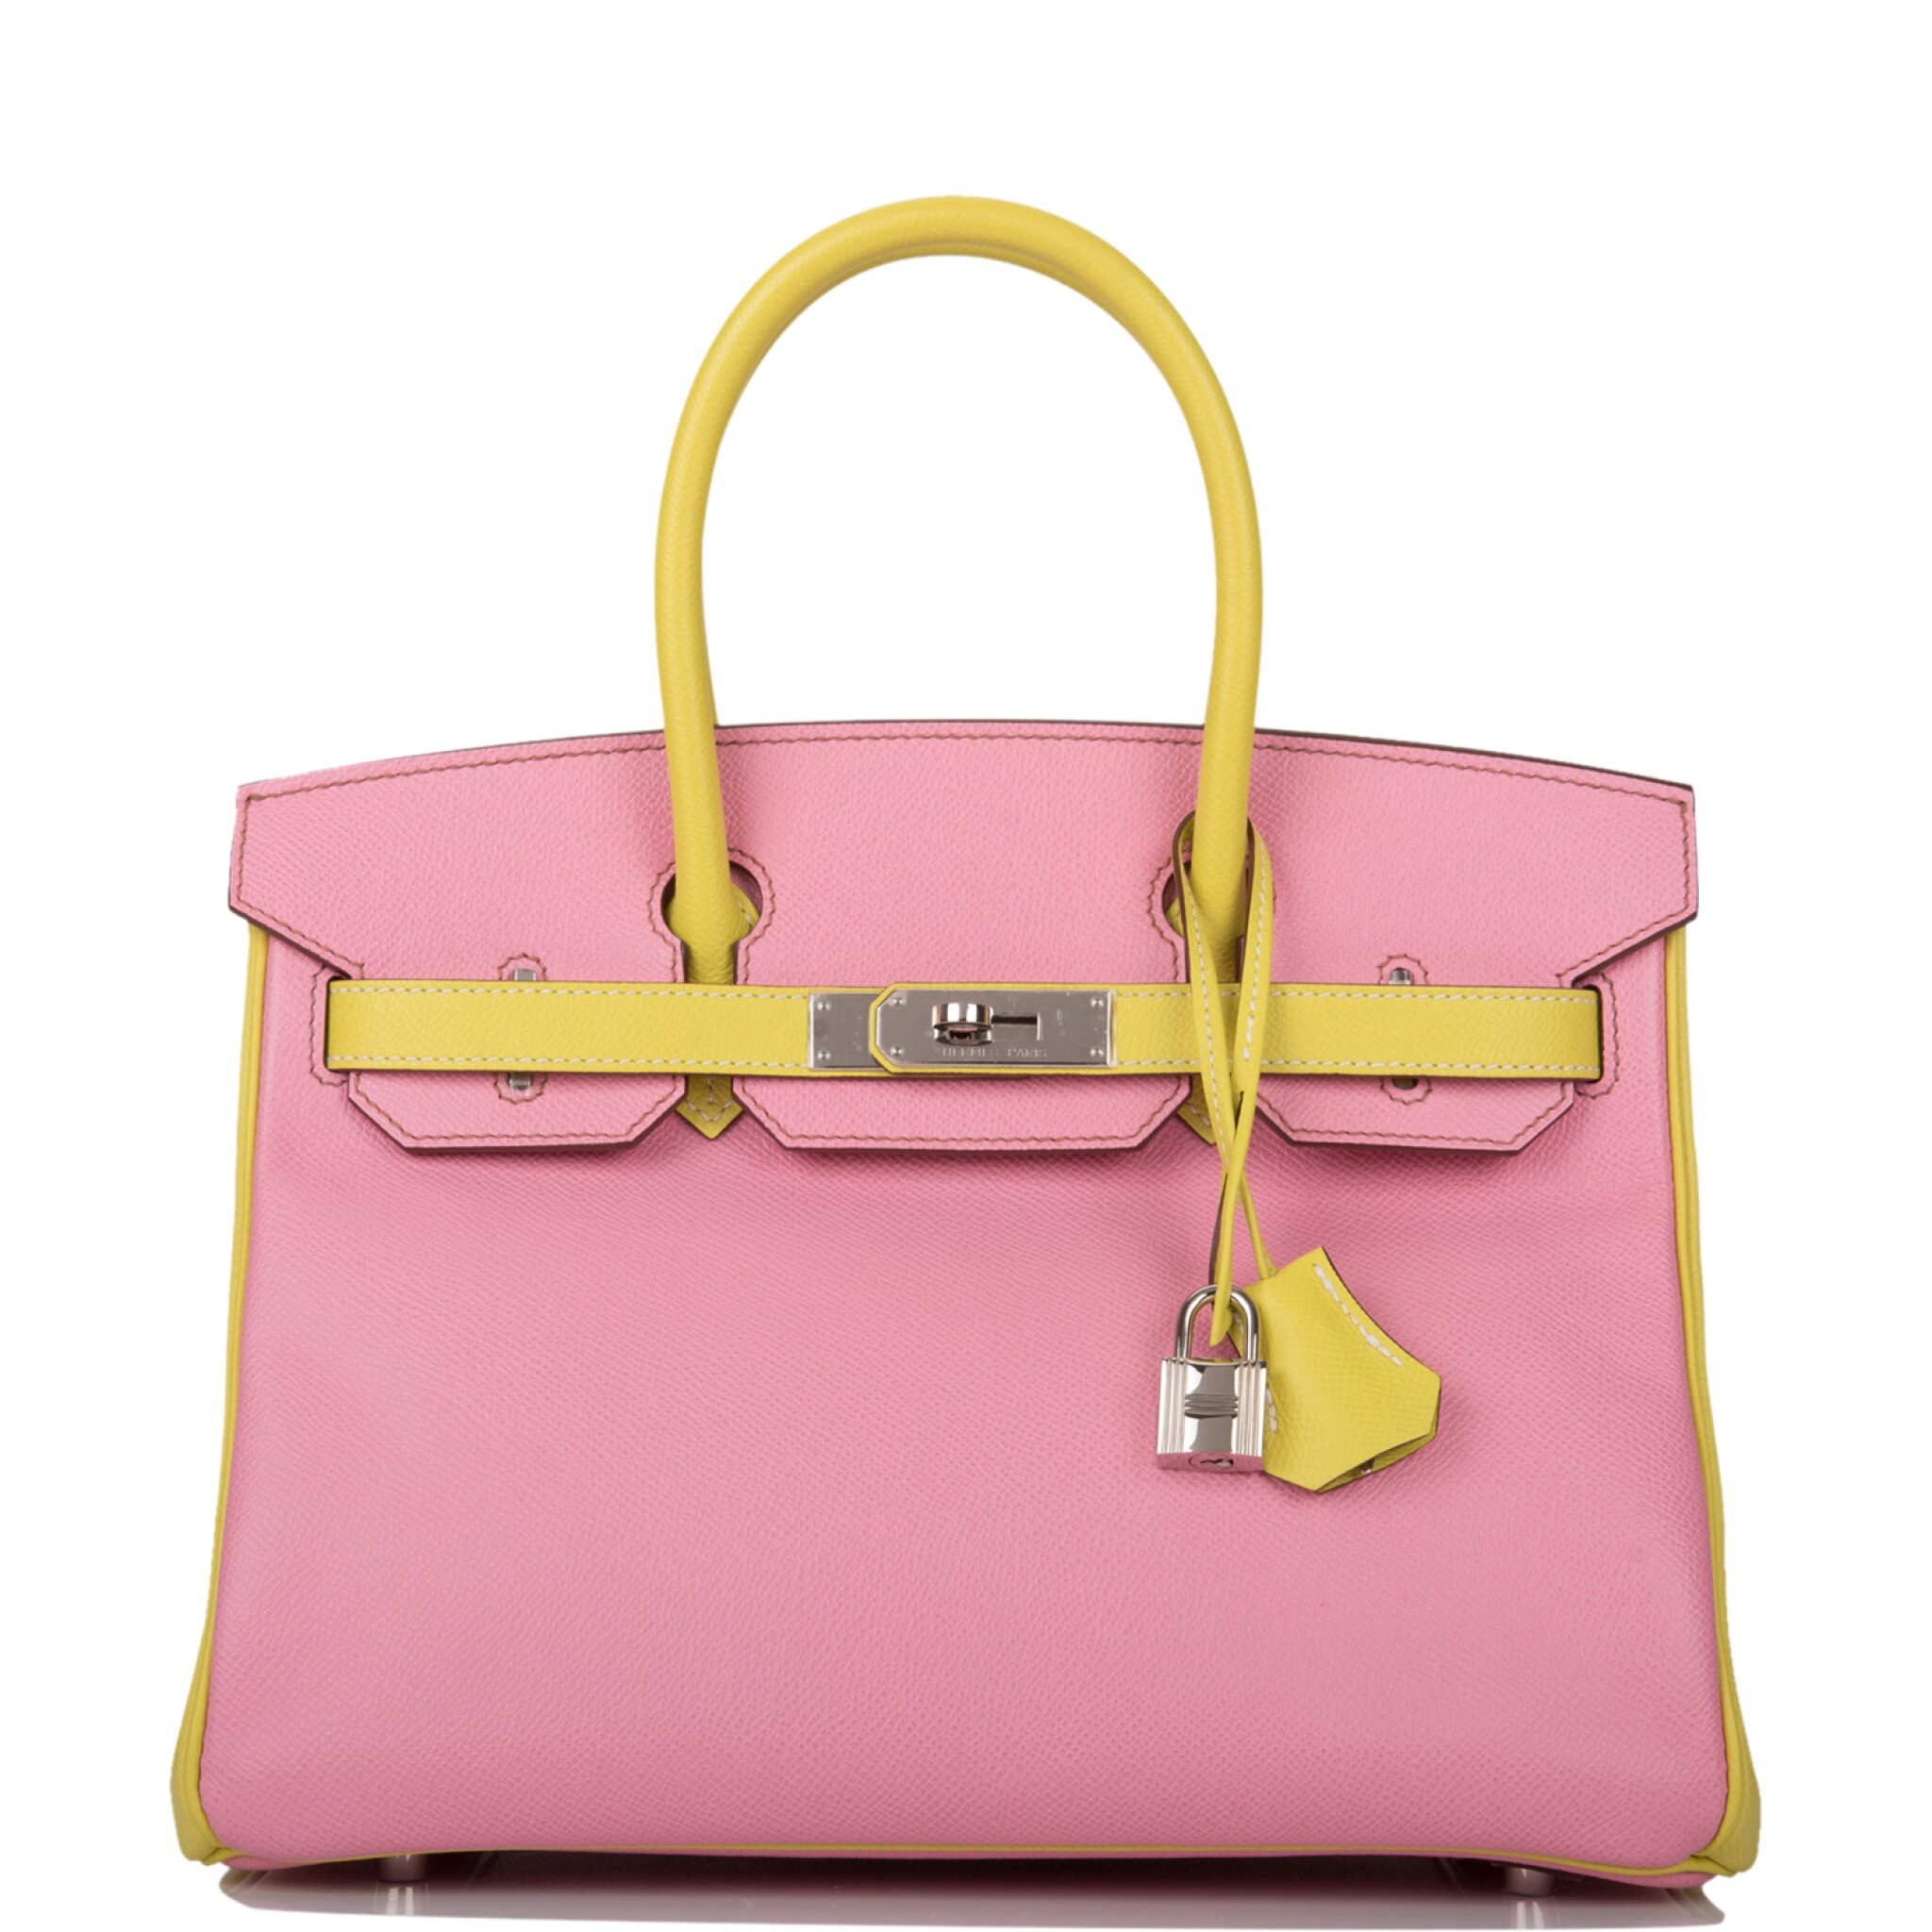 View full screen - View 1 of Lot 34. HERMÈS | HORSESHOE STAMP (HSS) BICOLOR BUBBLEGUM AND LIME BIRKIN 30CM OF EPSOM LEATHER WITH PALLADIUM HARDWARE.